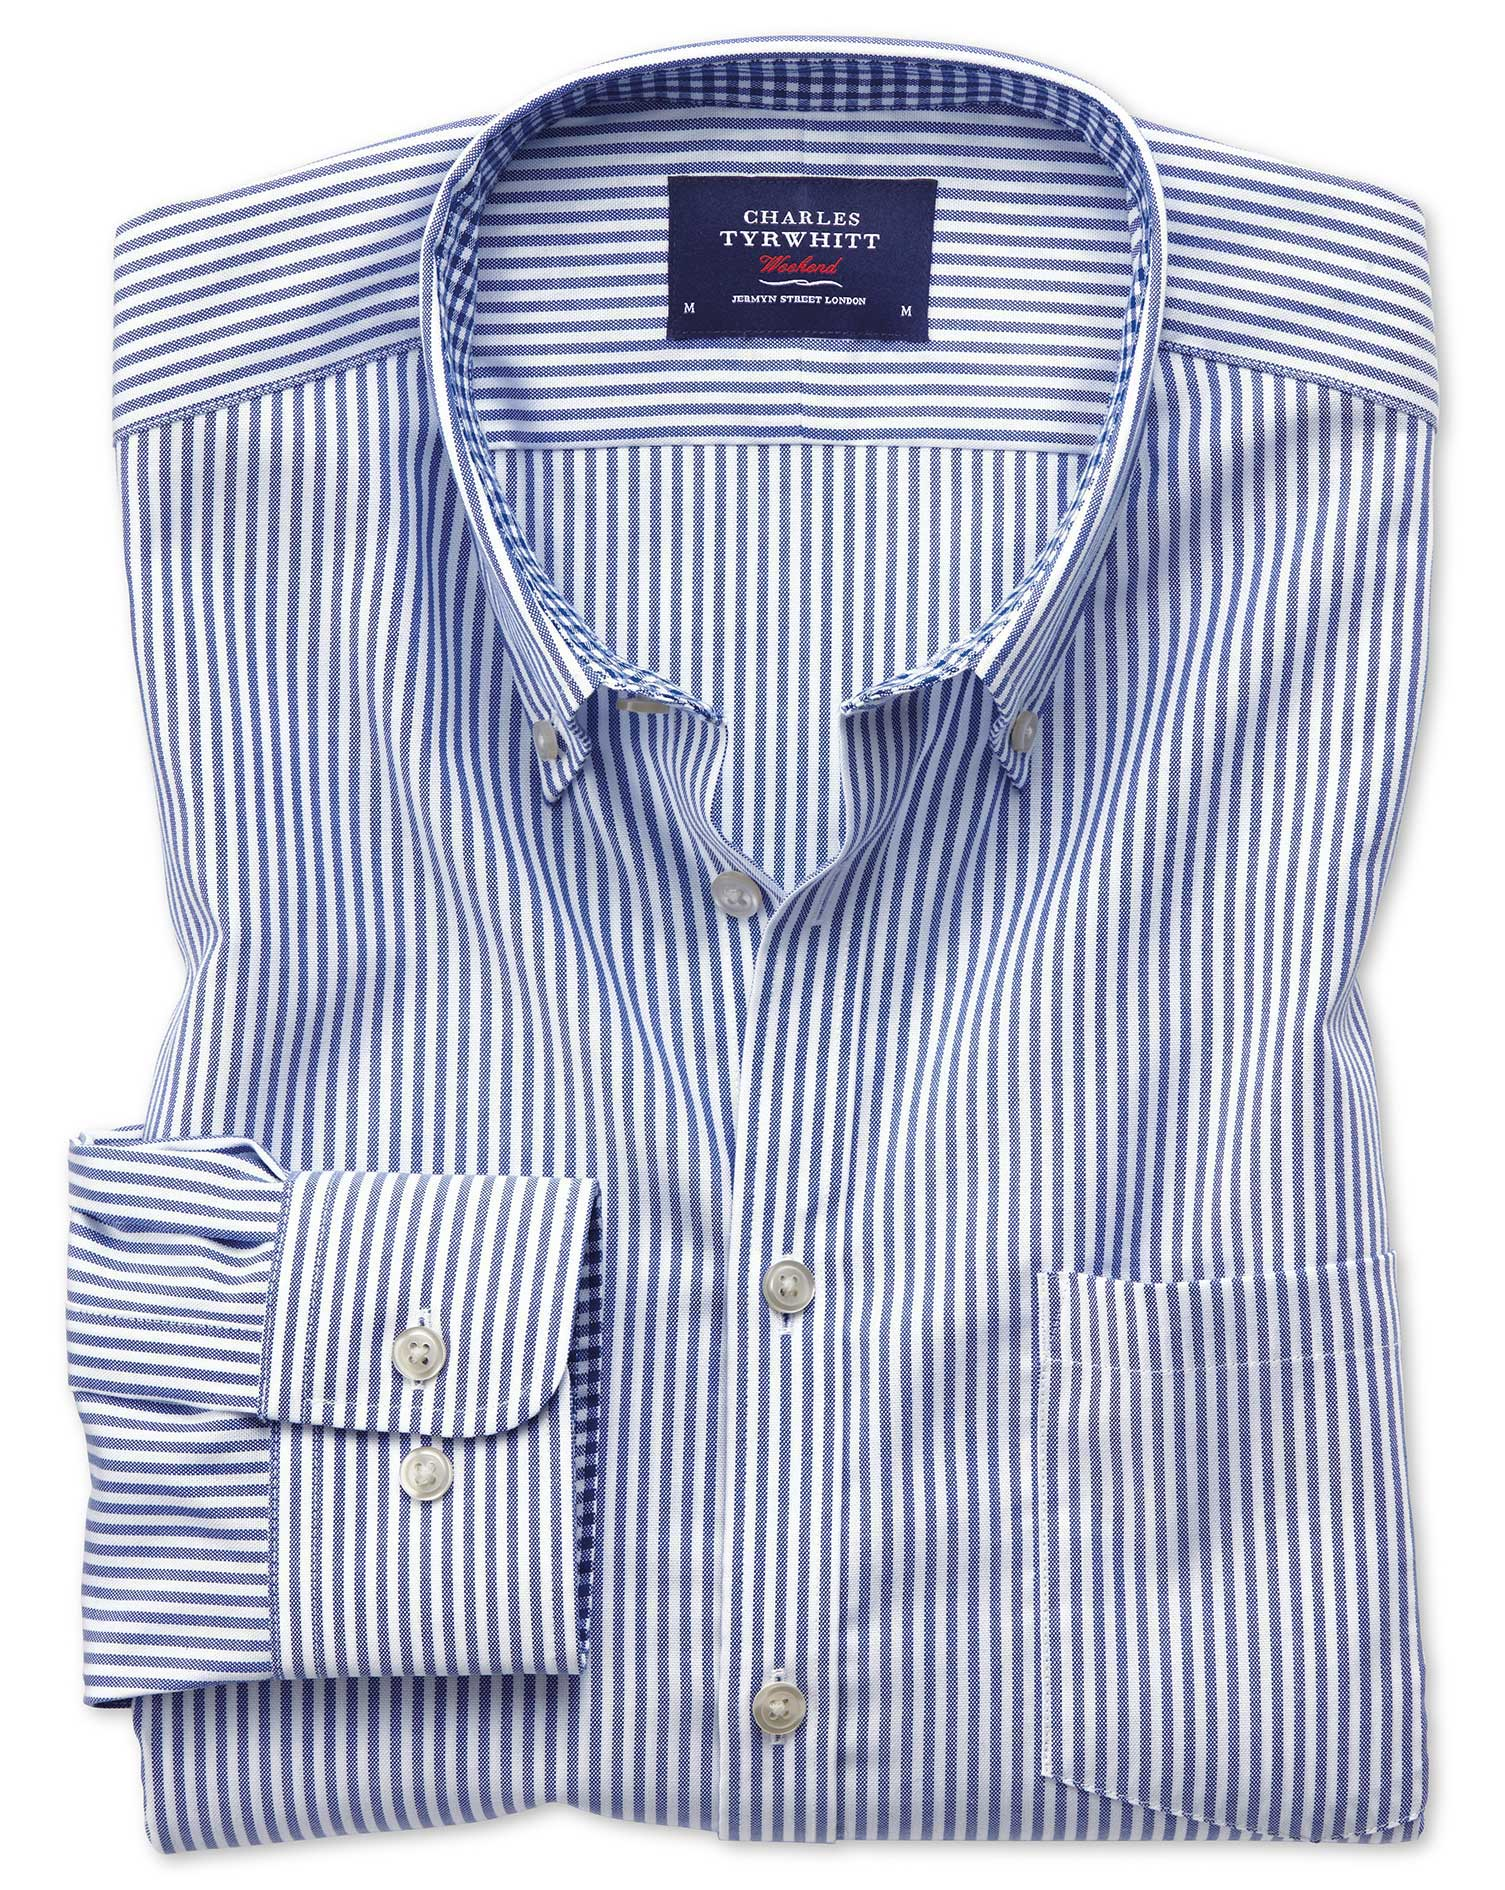 Extra Slim Fit Button-Down Non-Iron Oxford Bengal Stripe Royal Blue Cotton Shirt Single Cuff Size XS